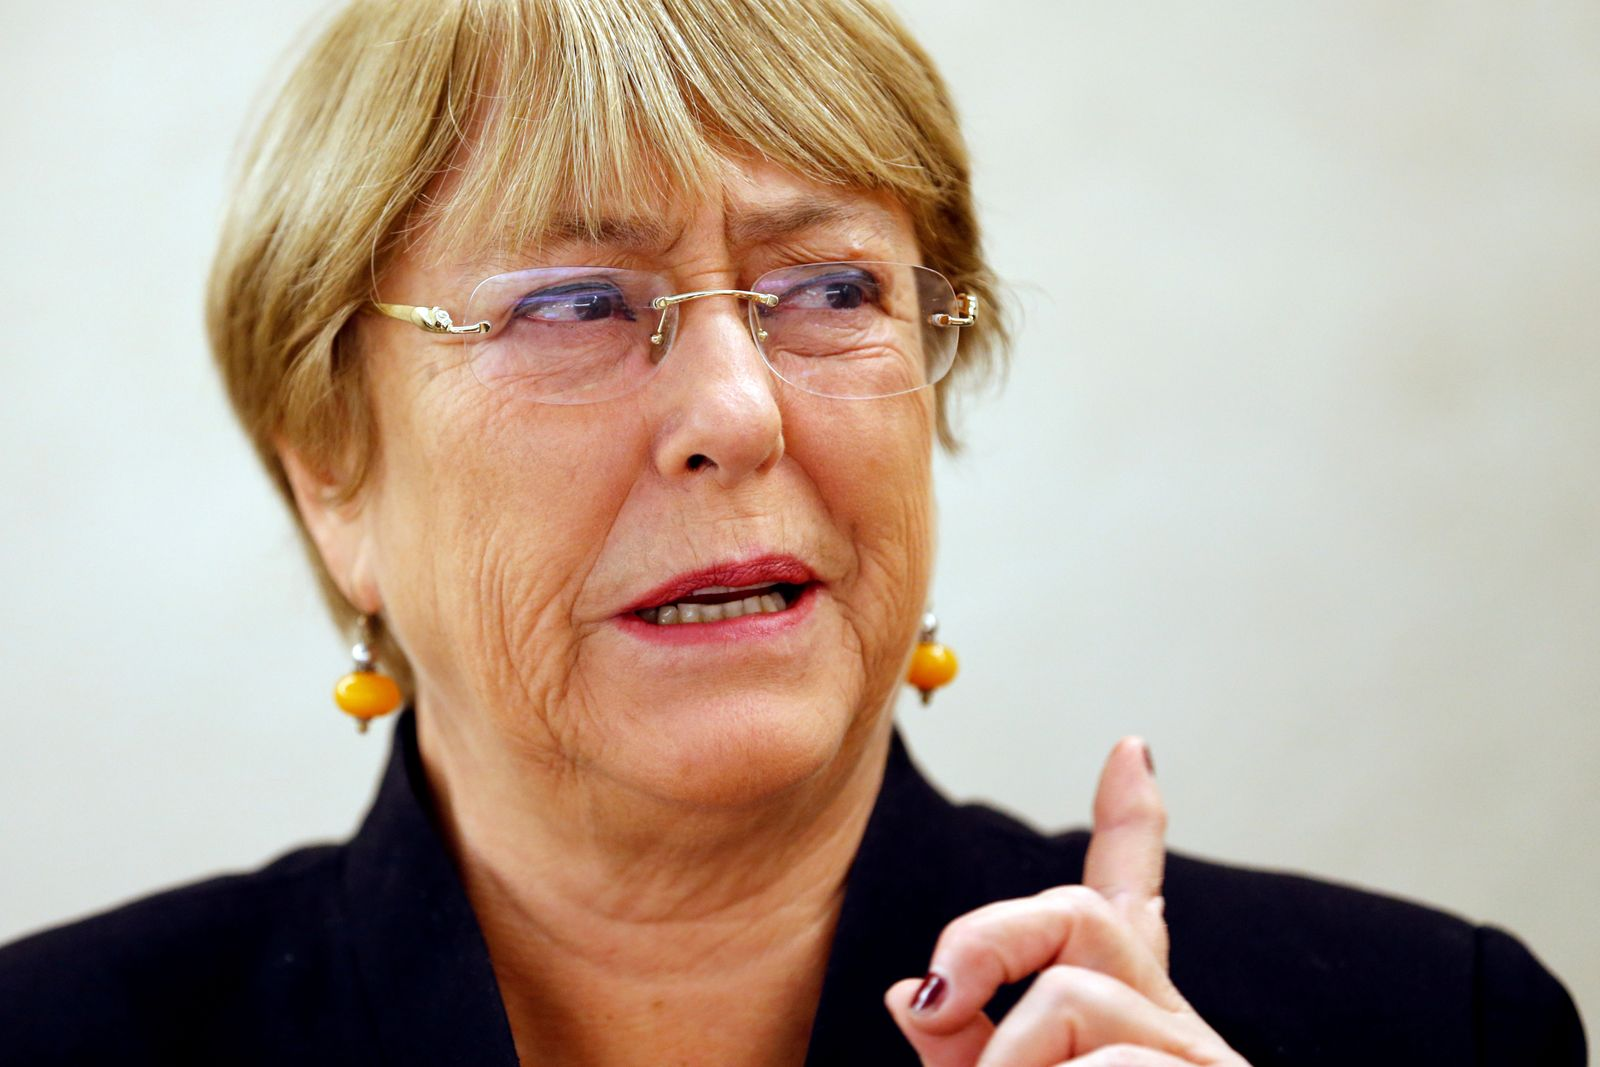 FILE PHOTO: UN High Commissioner for Human Rights Bachelet attends a session of the Human Rights Council in Geneva